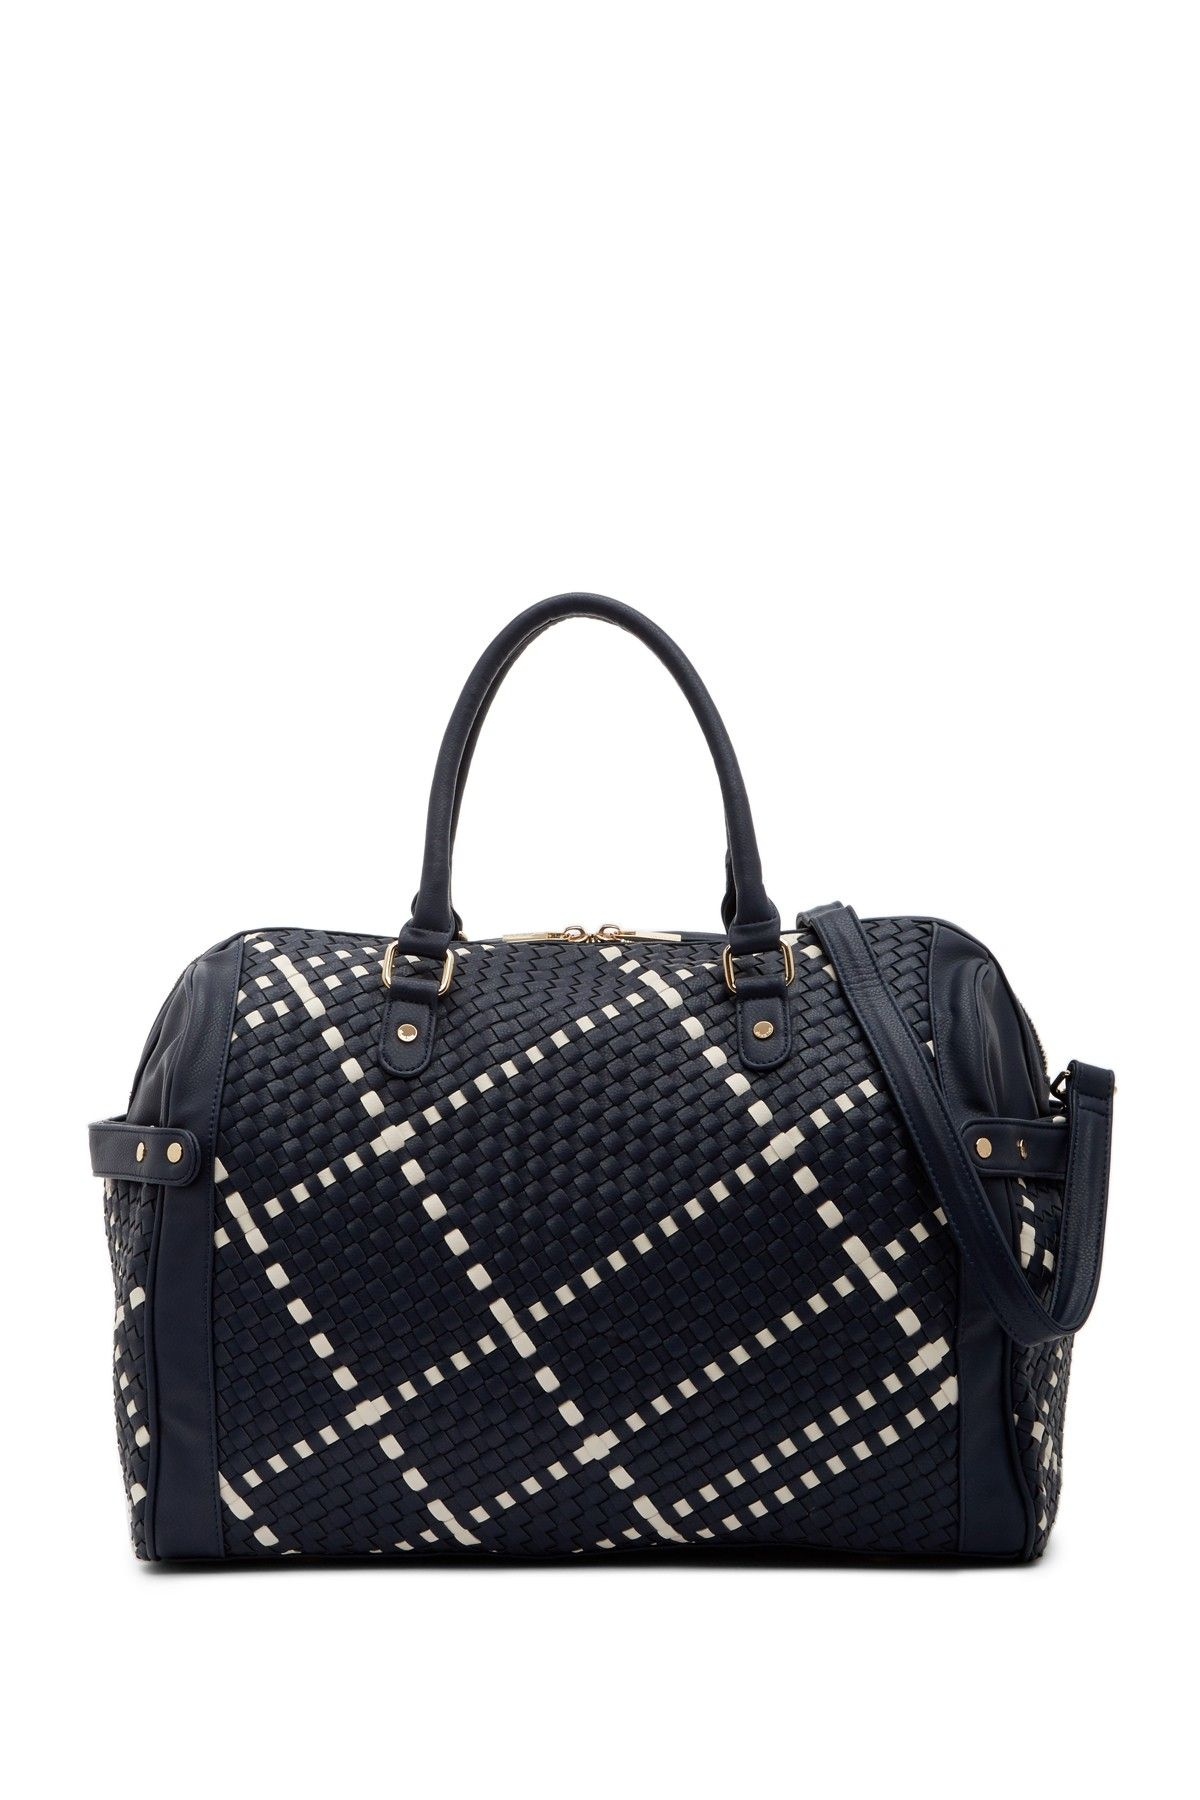 f9695a7f72 Deux Lux | Barrow Weekend Bag | Products